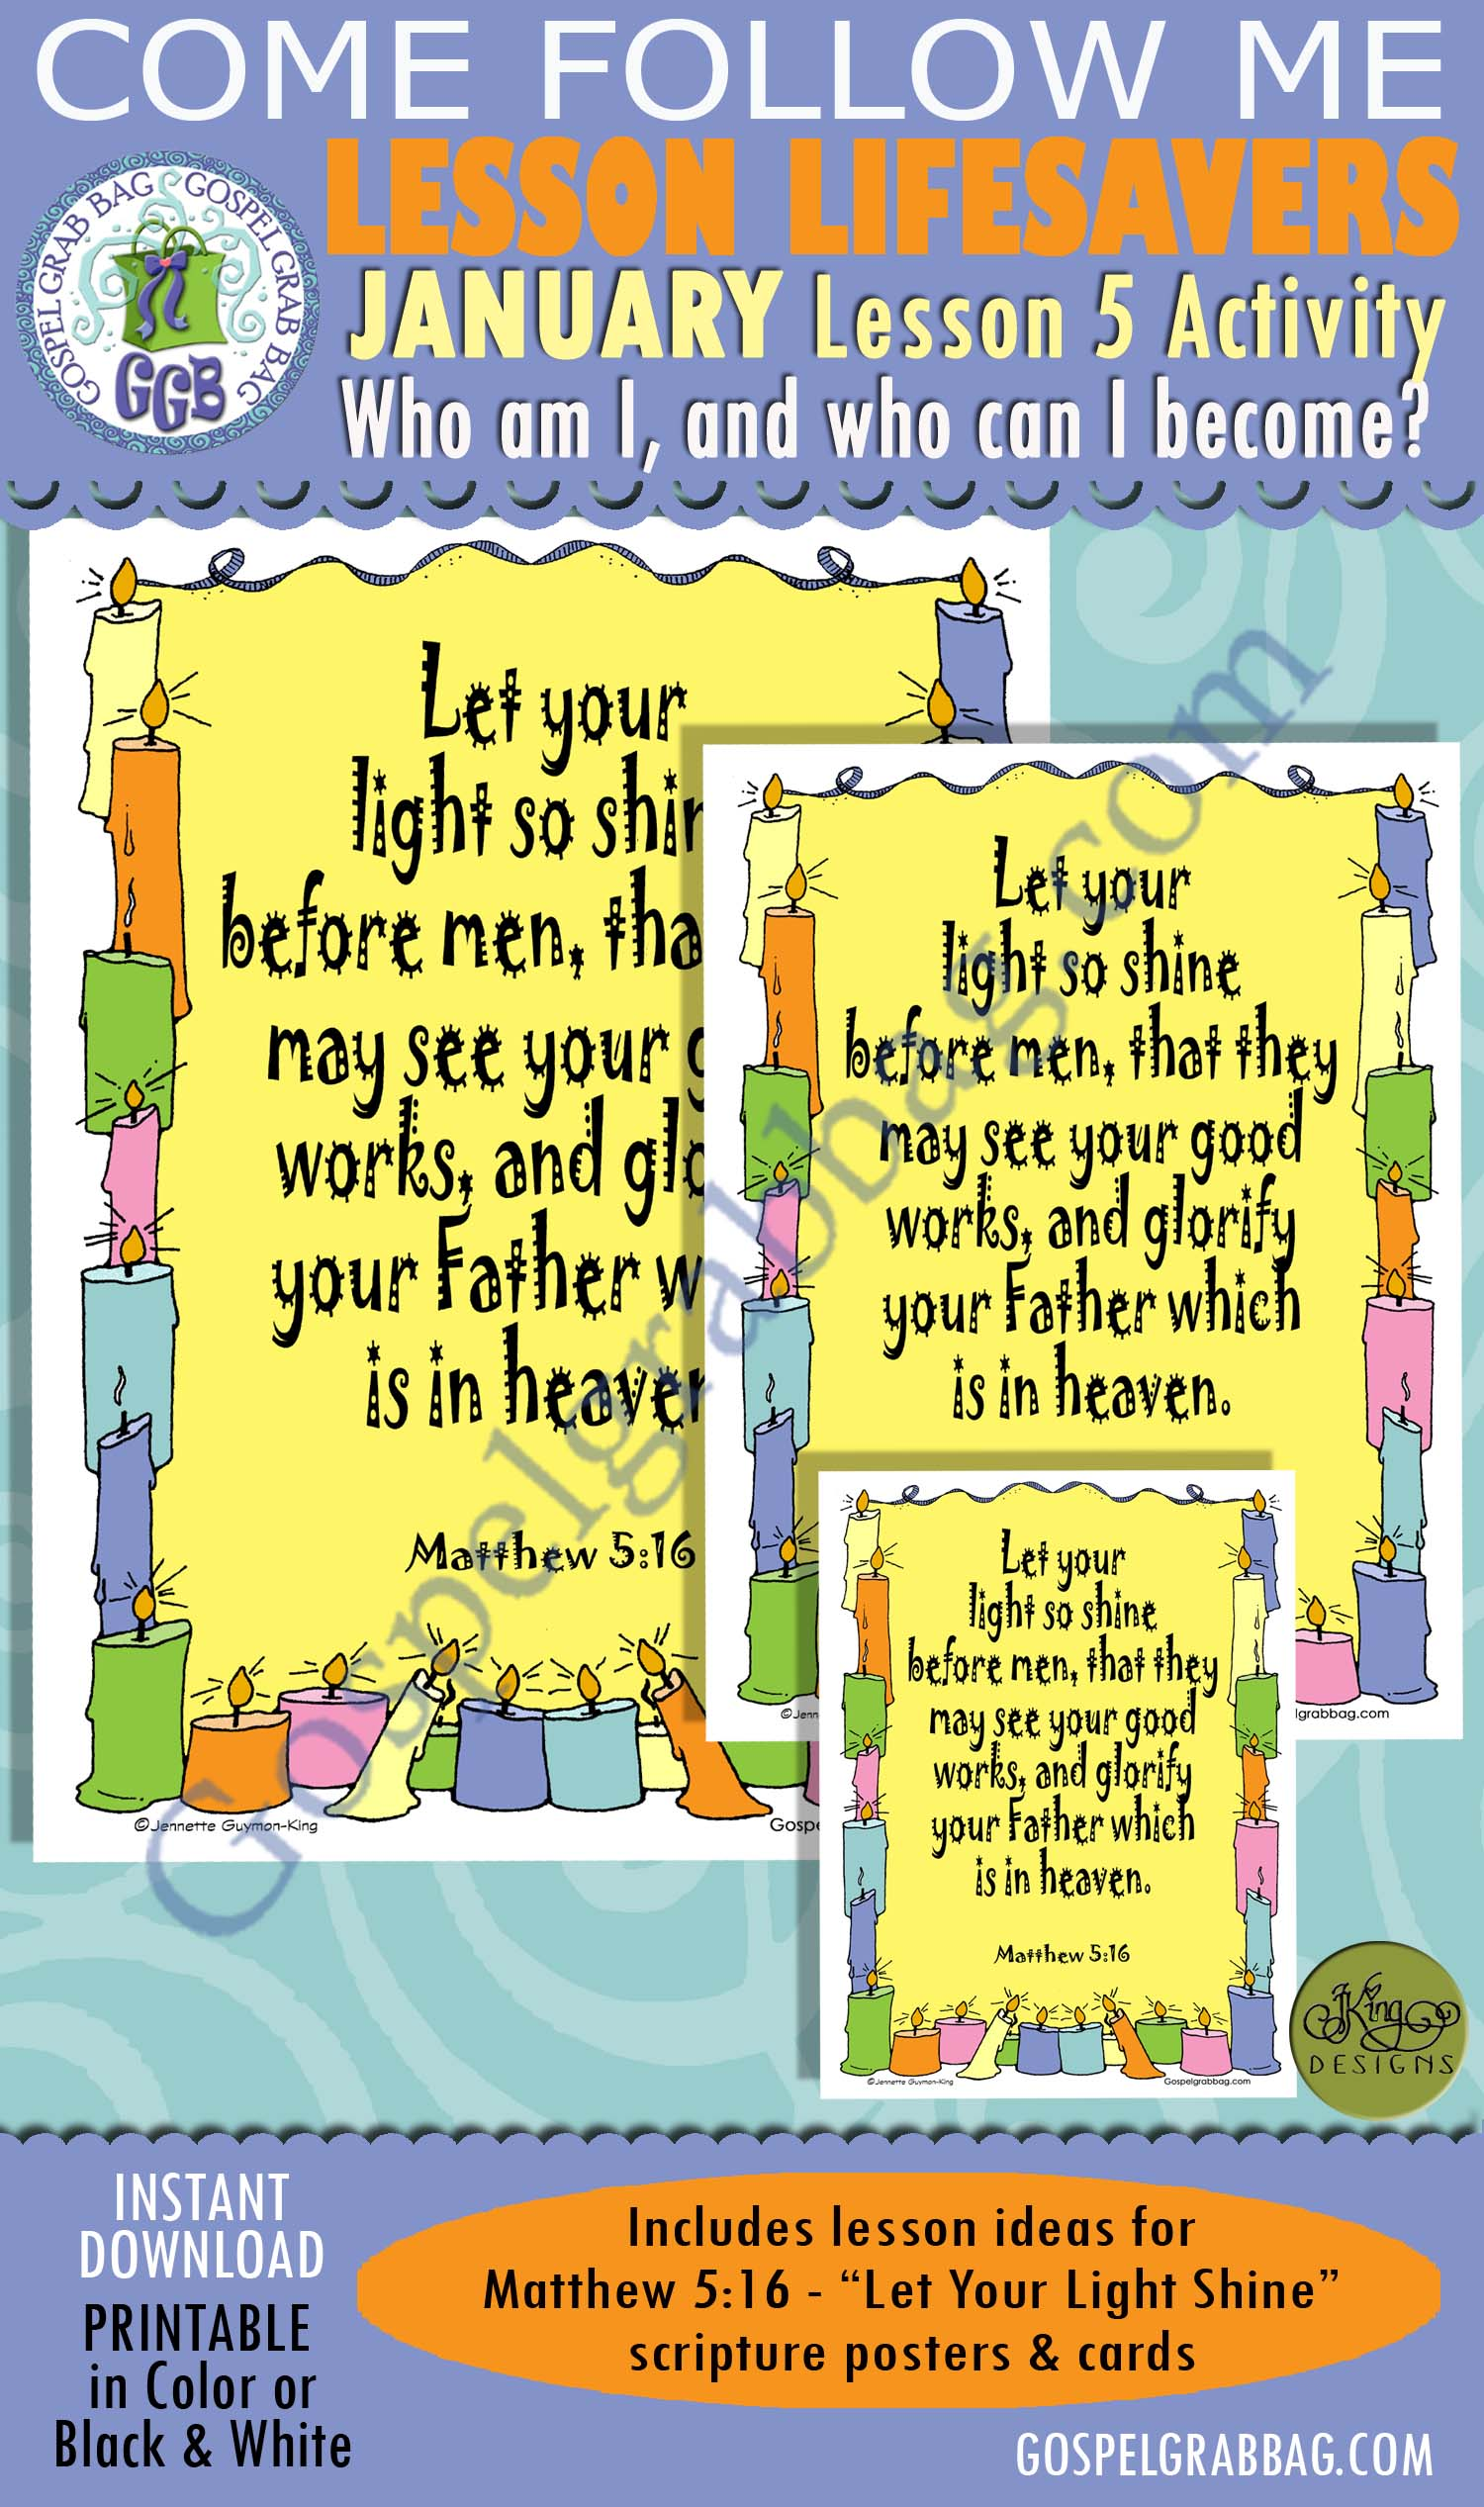 """$2.00 January Lesson 5 - Come Follow Me """"Who am I, and who can I become?"""" ACTIVITY: Matthew 5:16 Scripture Memorization Poster and Cards"""